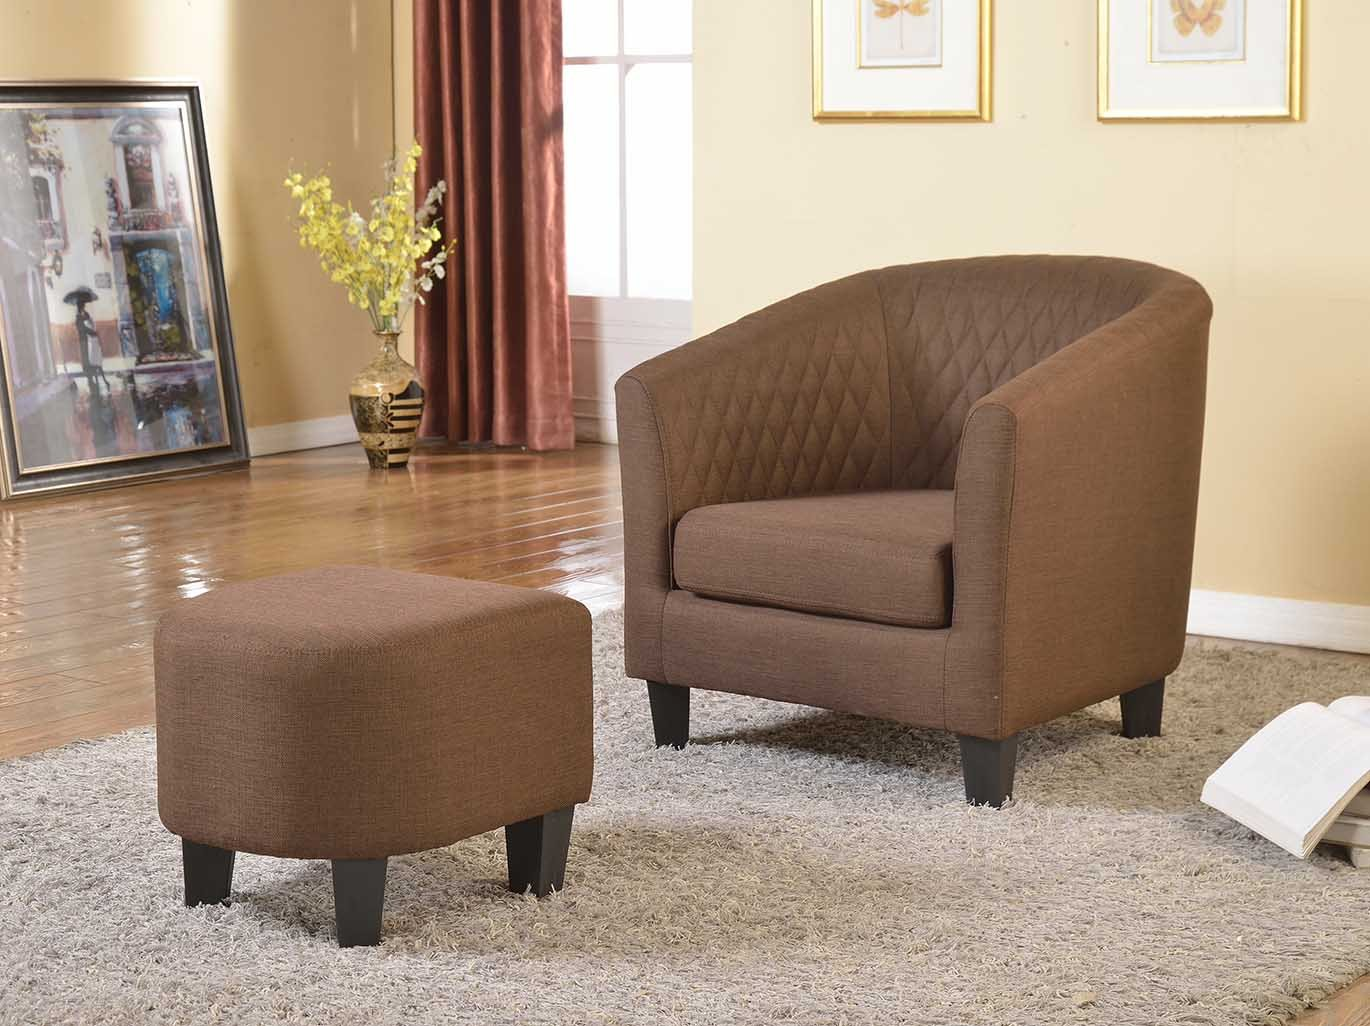 Sensational Container Furniture Direct Isabella Collection 2 Piece Traditional Fabric Upholstered Lounge Chair Ottoman Footrest Set Brown Creativecarmelina Interior Chair Design Creativecarmelinacom